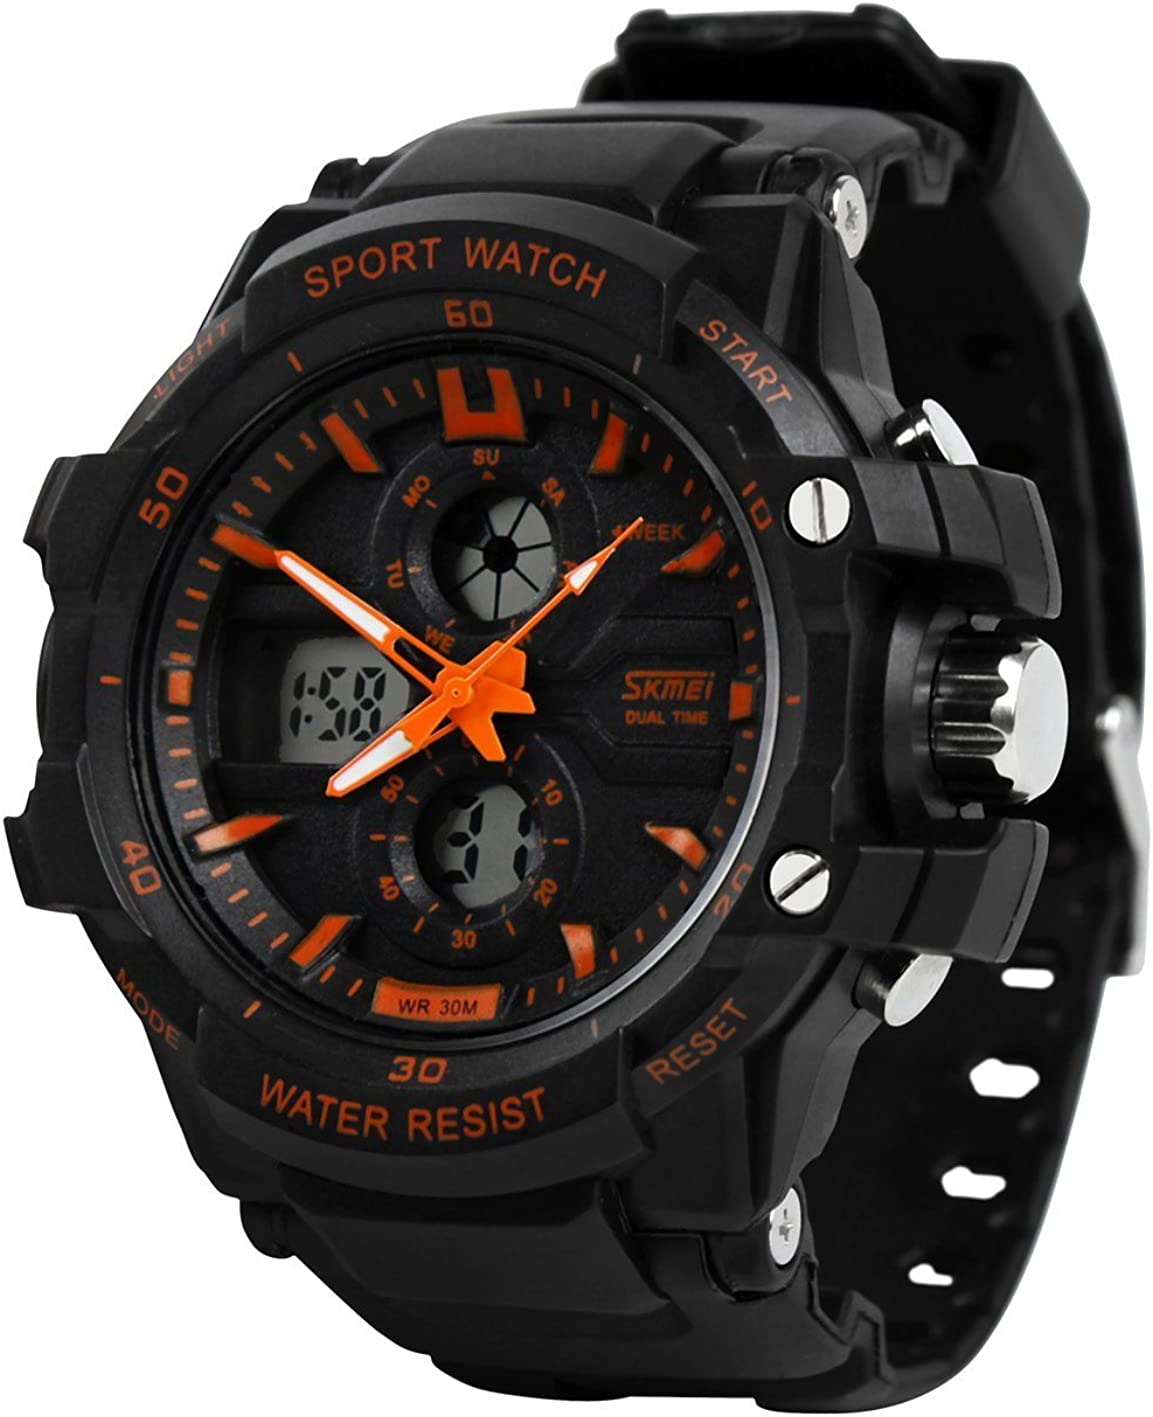 Sports Watch Men s Multi-Function Digital LED Watch Electronic Watch 50 Meters Waterproof Luminous Watch